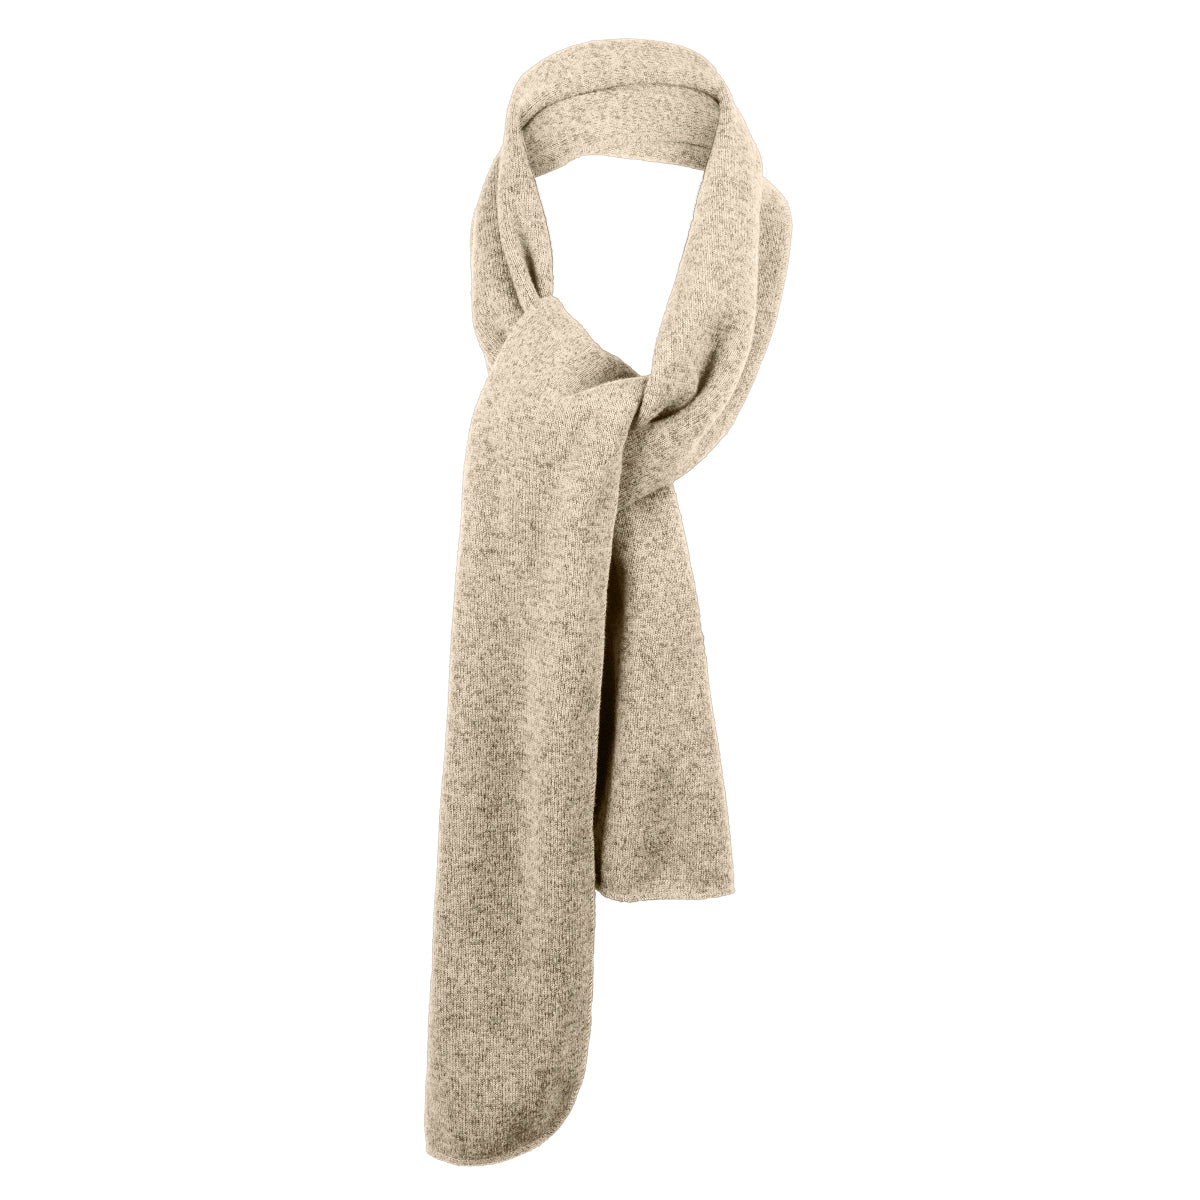 Heathered Knit Scarf Oatmeal Heather/ Brown